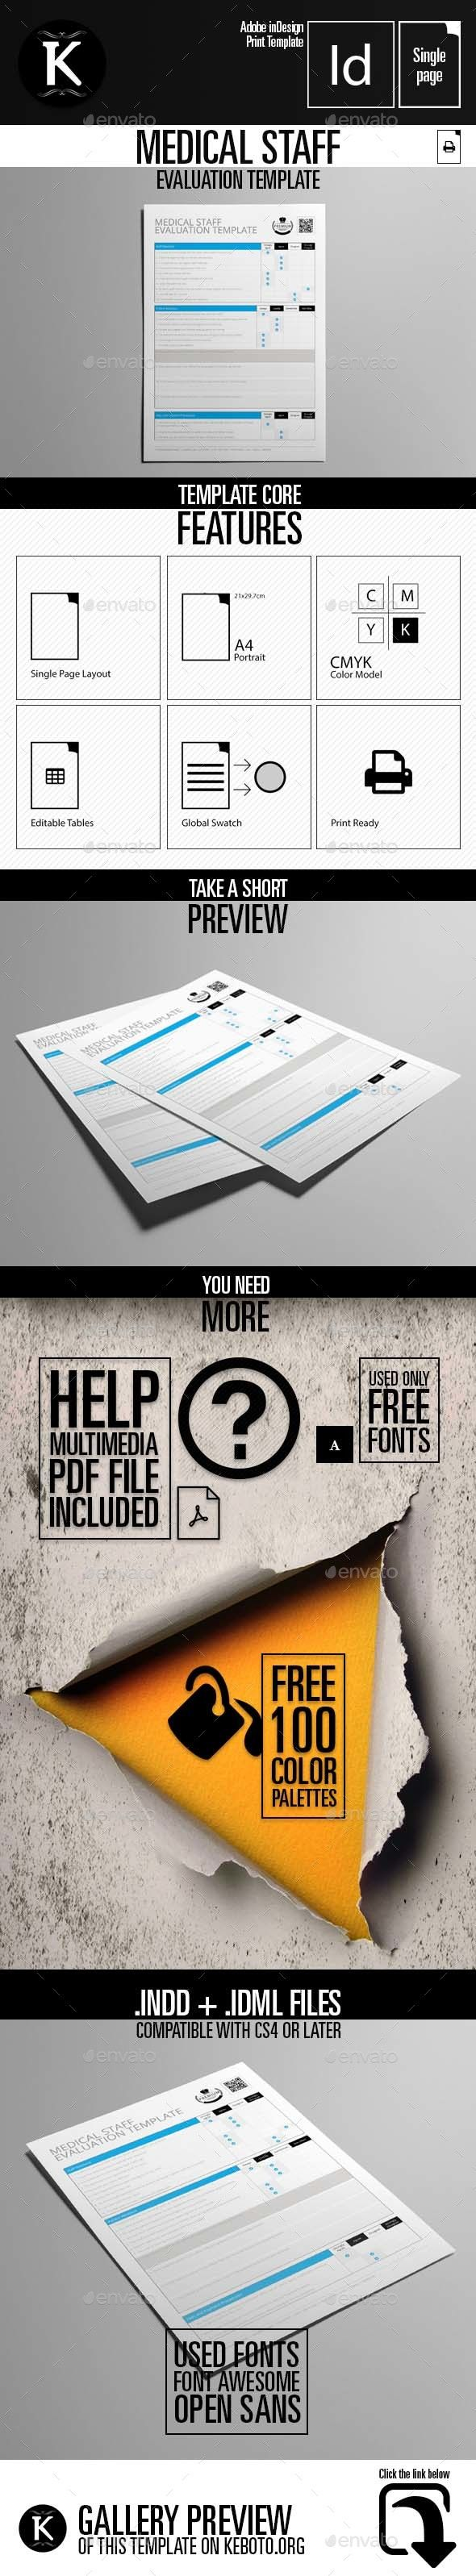 Medical Staff Evaluation Template 1287 best Graphic